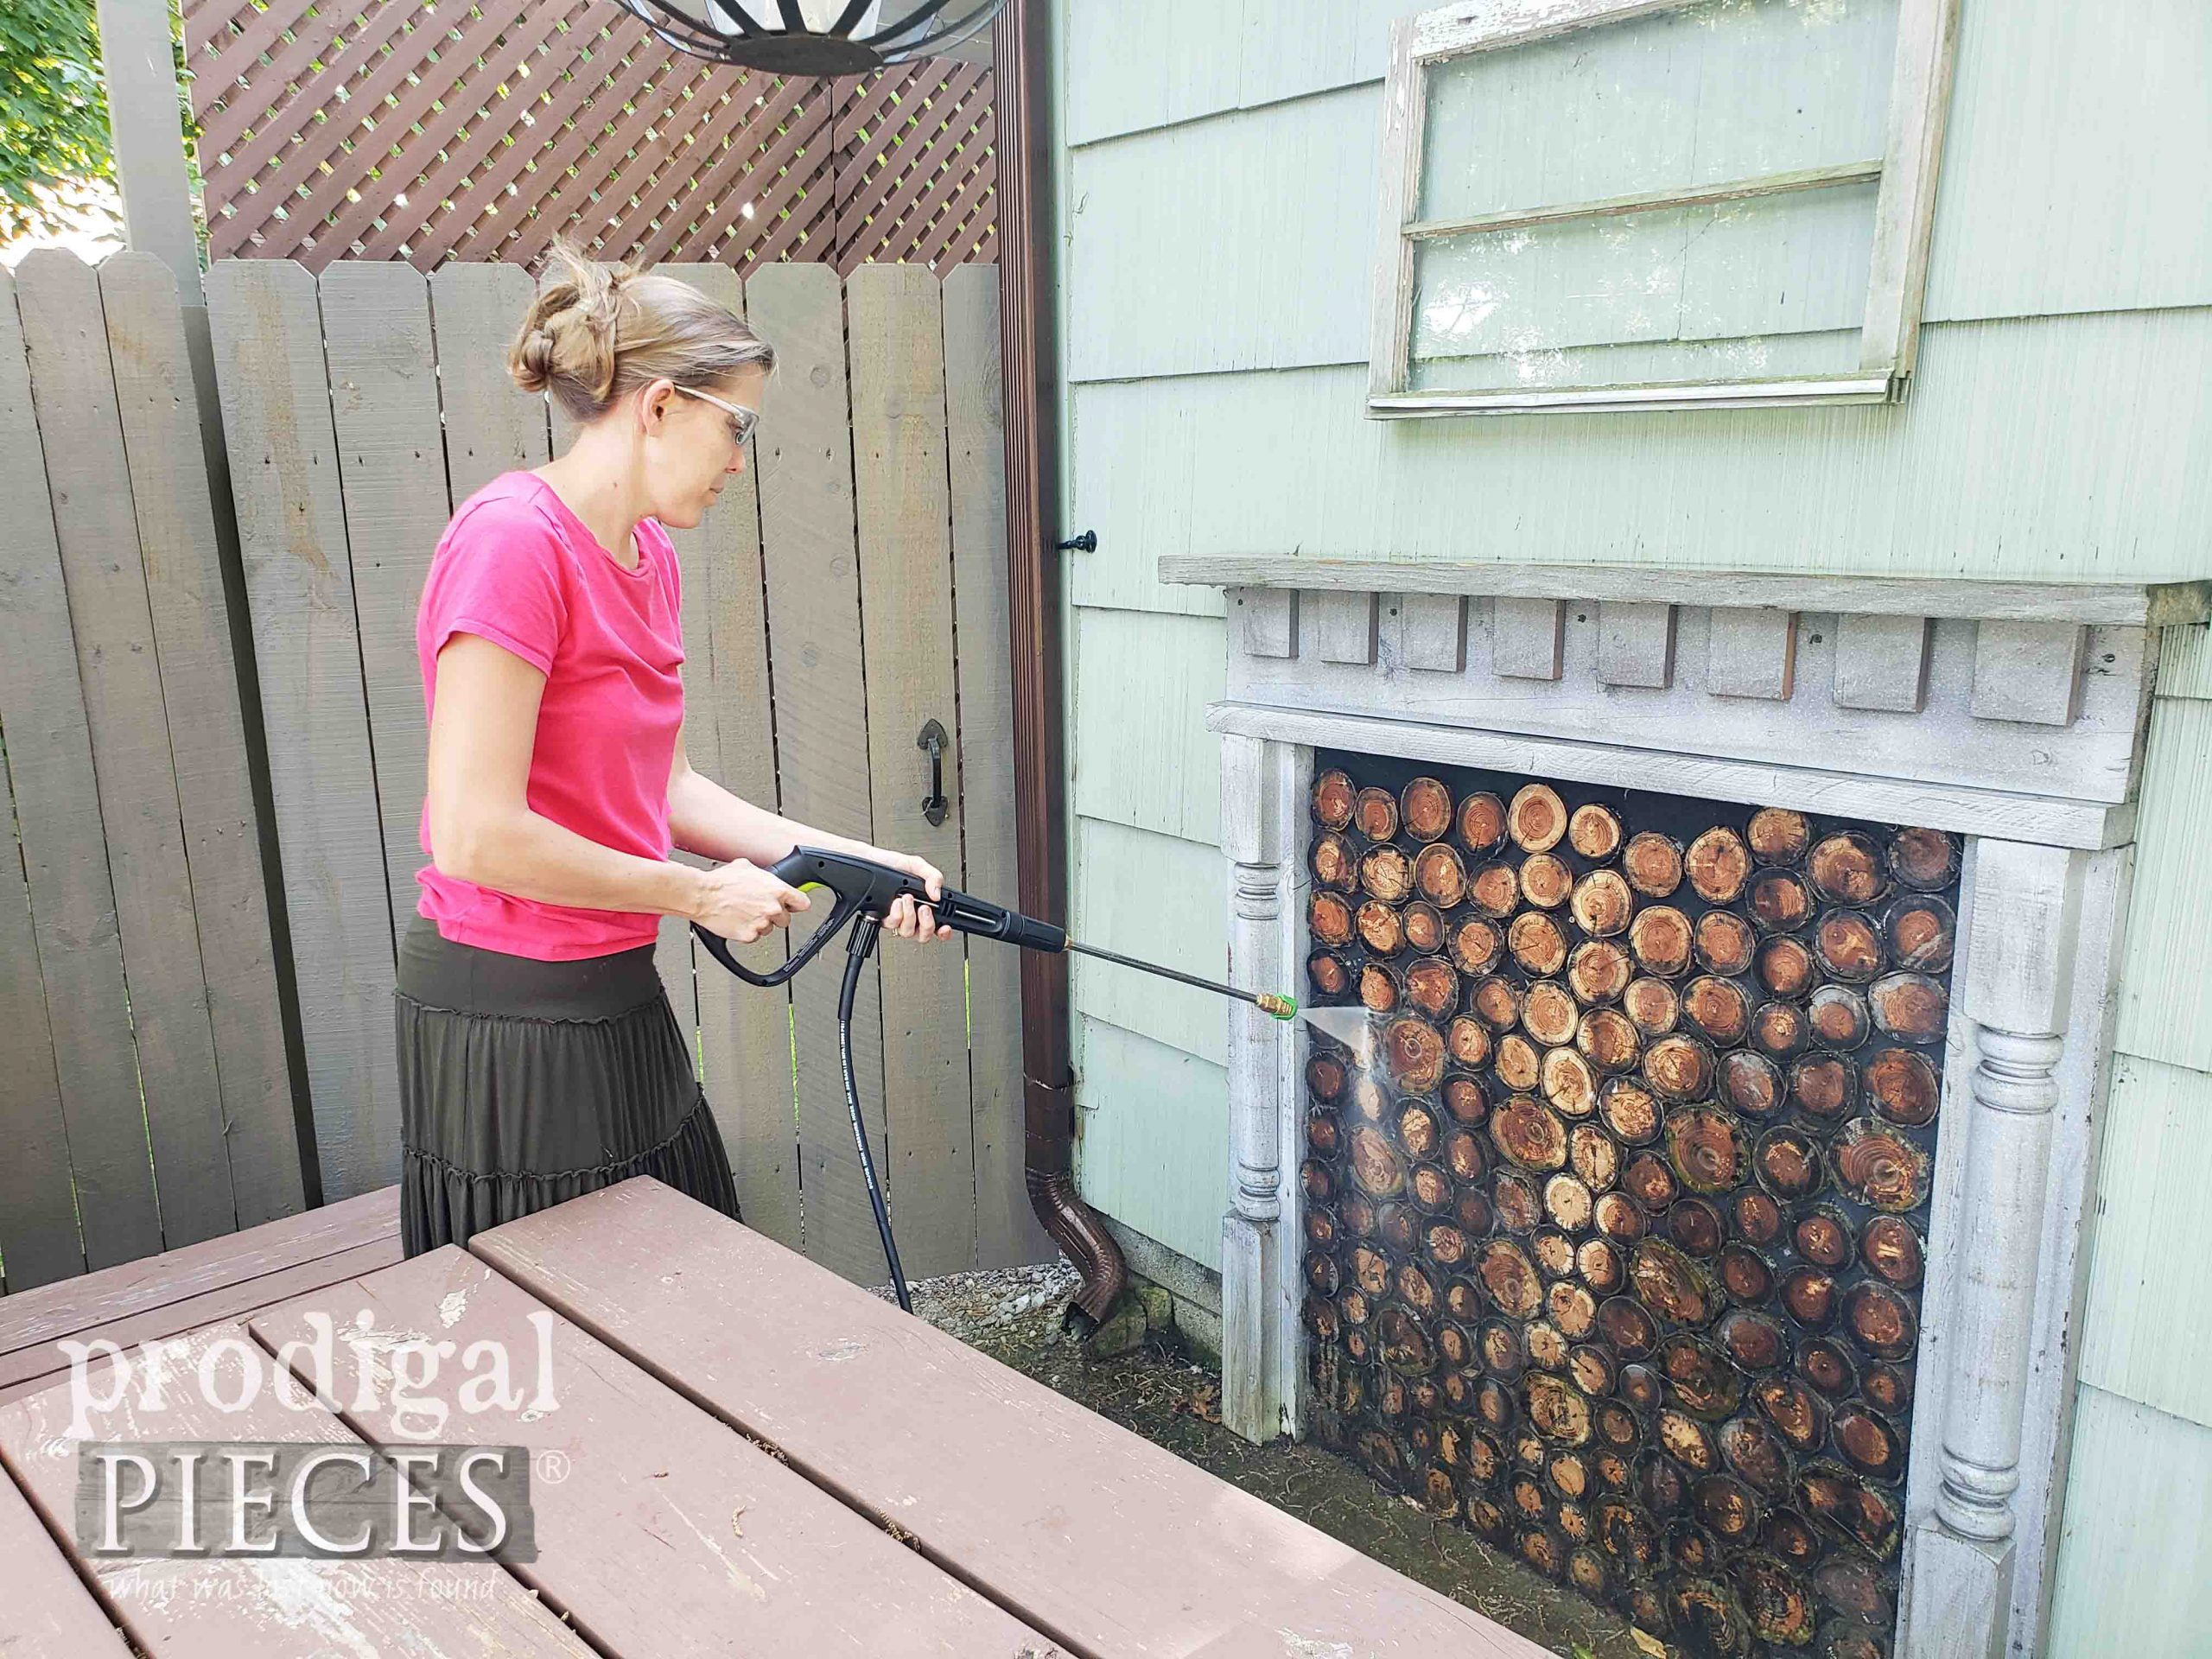 Pressure-Washing Faux Fireplace with Sun Joe Pressure Washer by Larissa of Prodigal Pieces | prodigalpieces.com #prodigalpieces